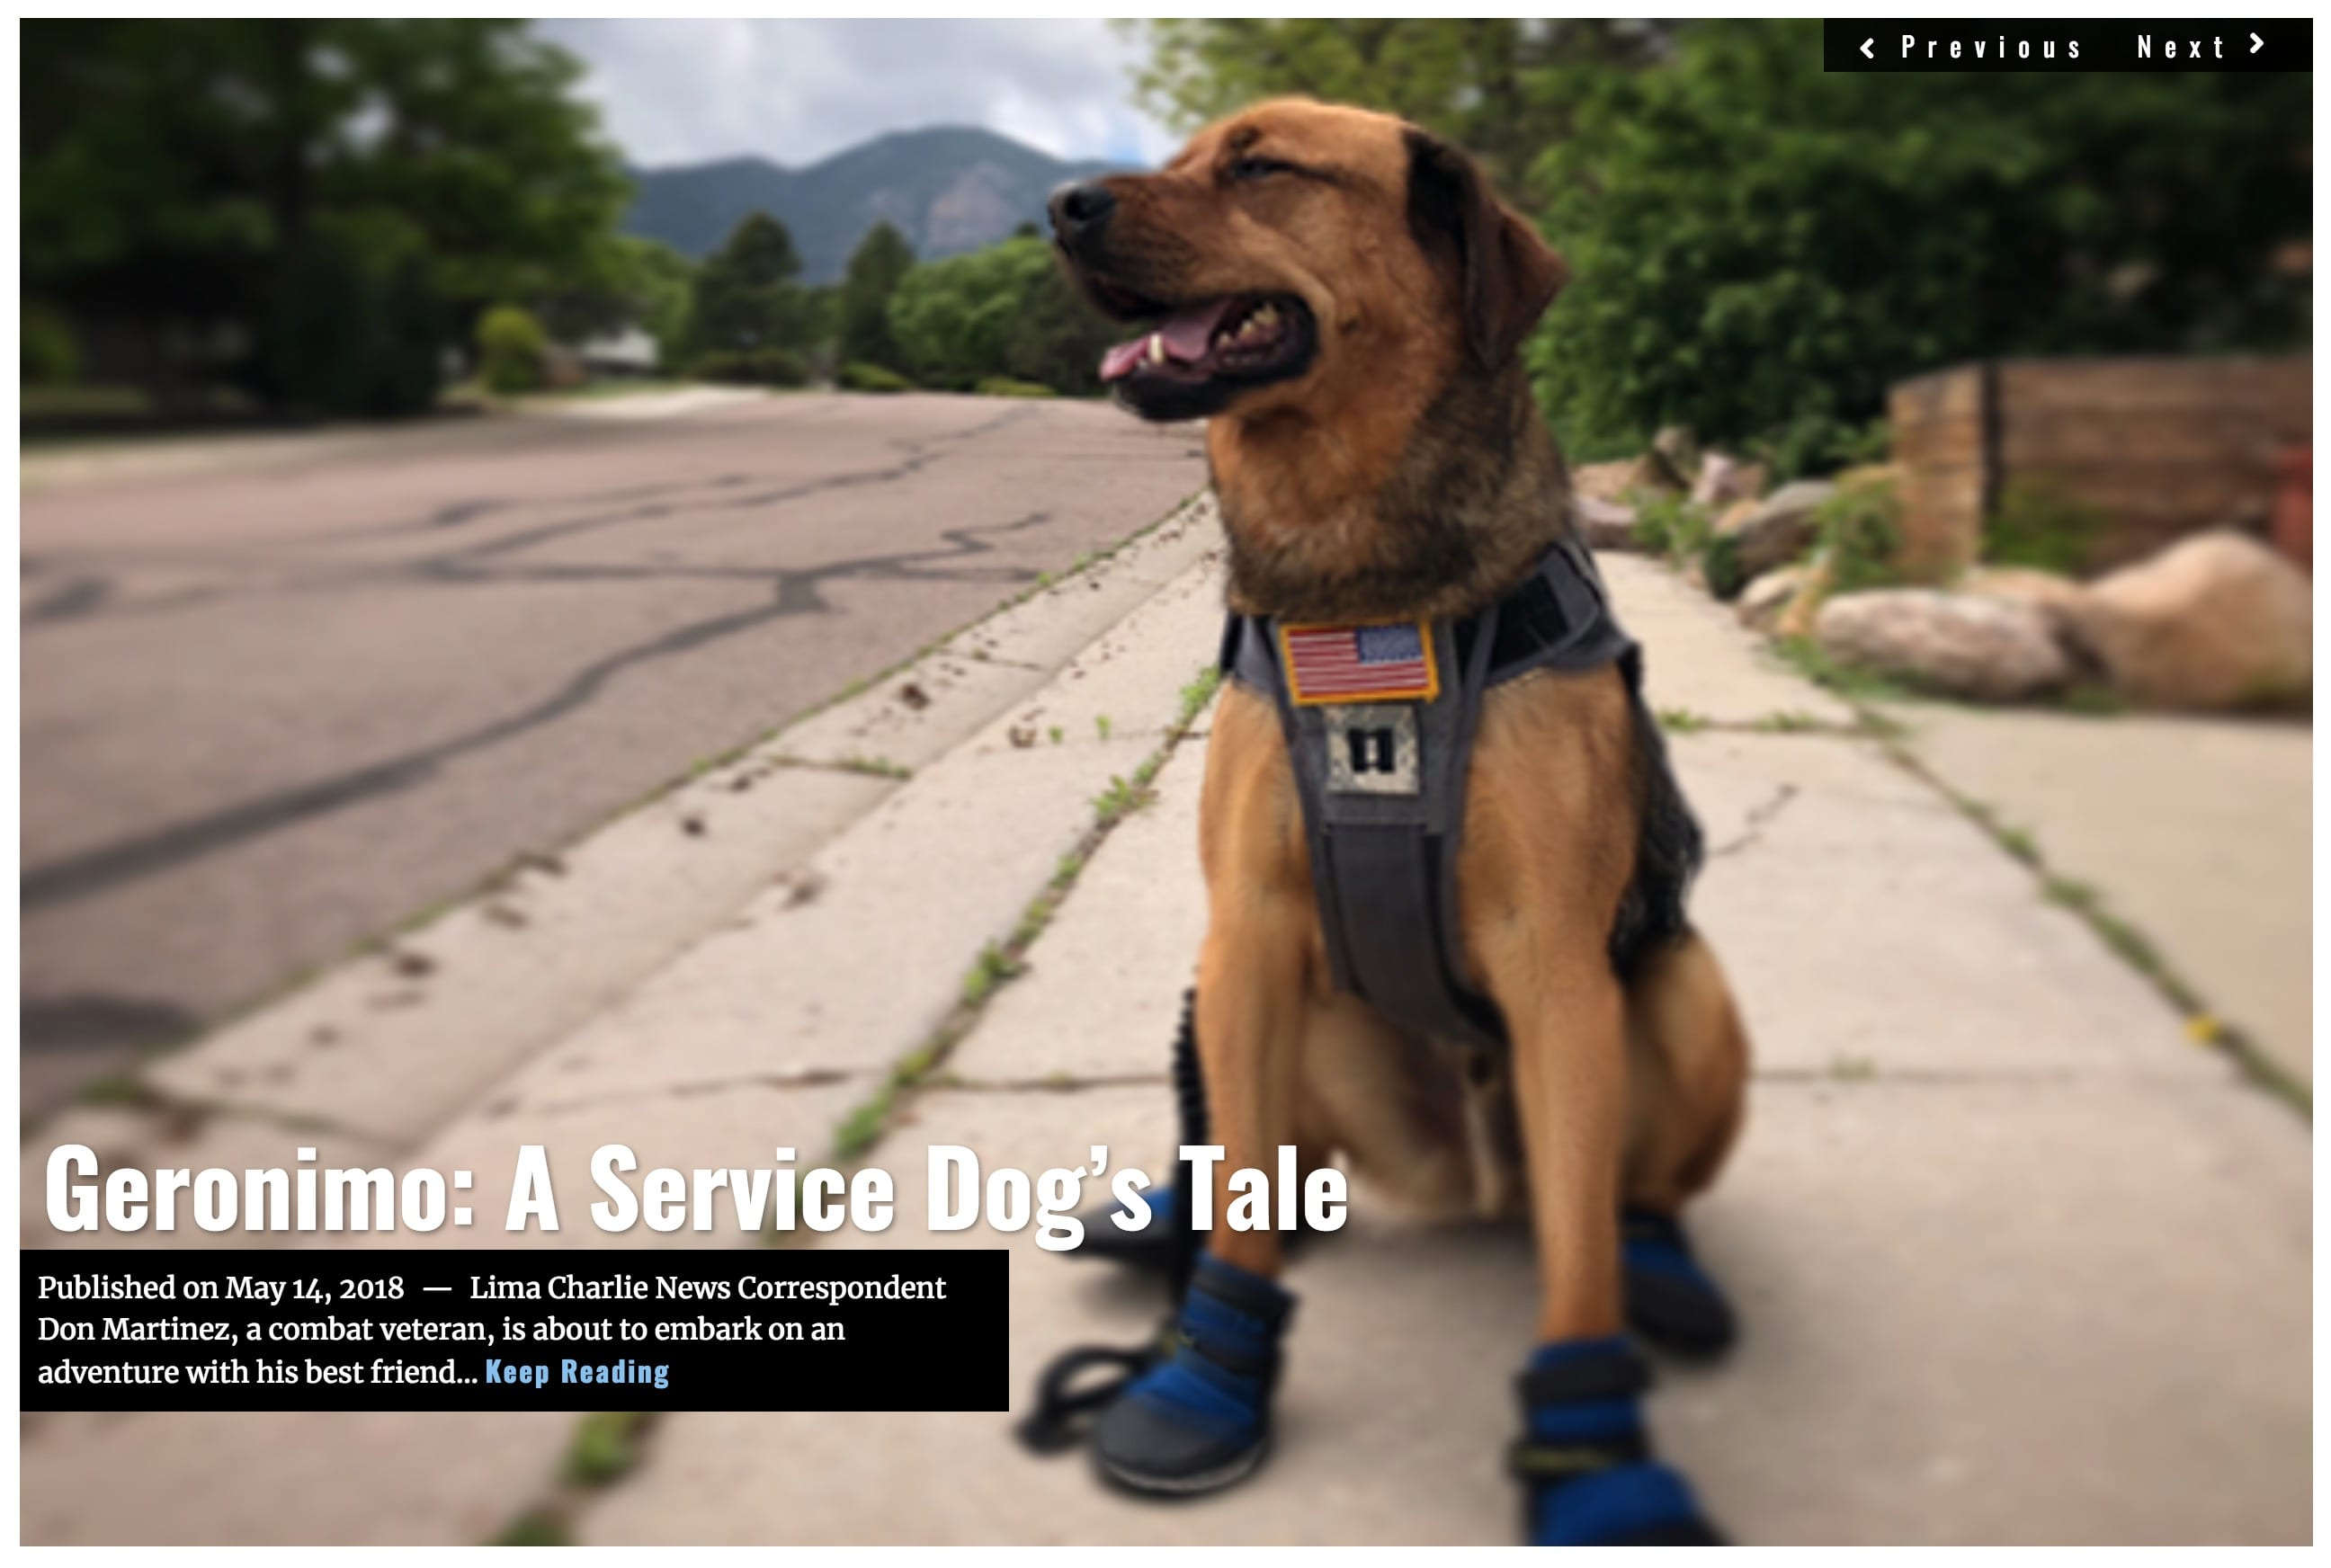 Image Lima Charlie News Headline Geronimo A Service Dogs Tale D.Martinez MAY 14 2018